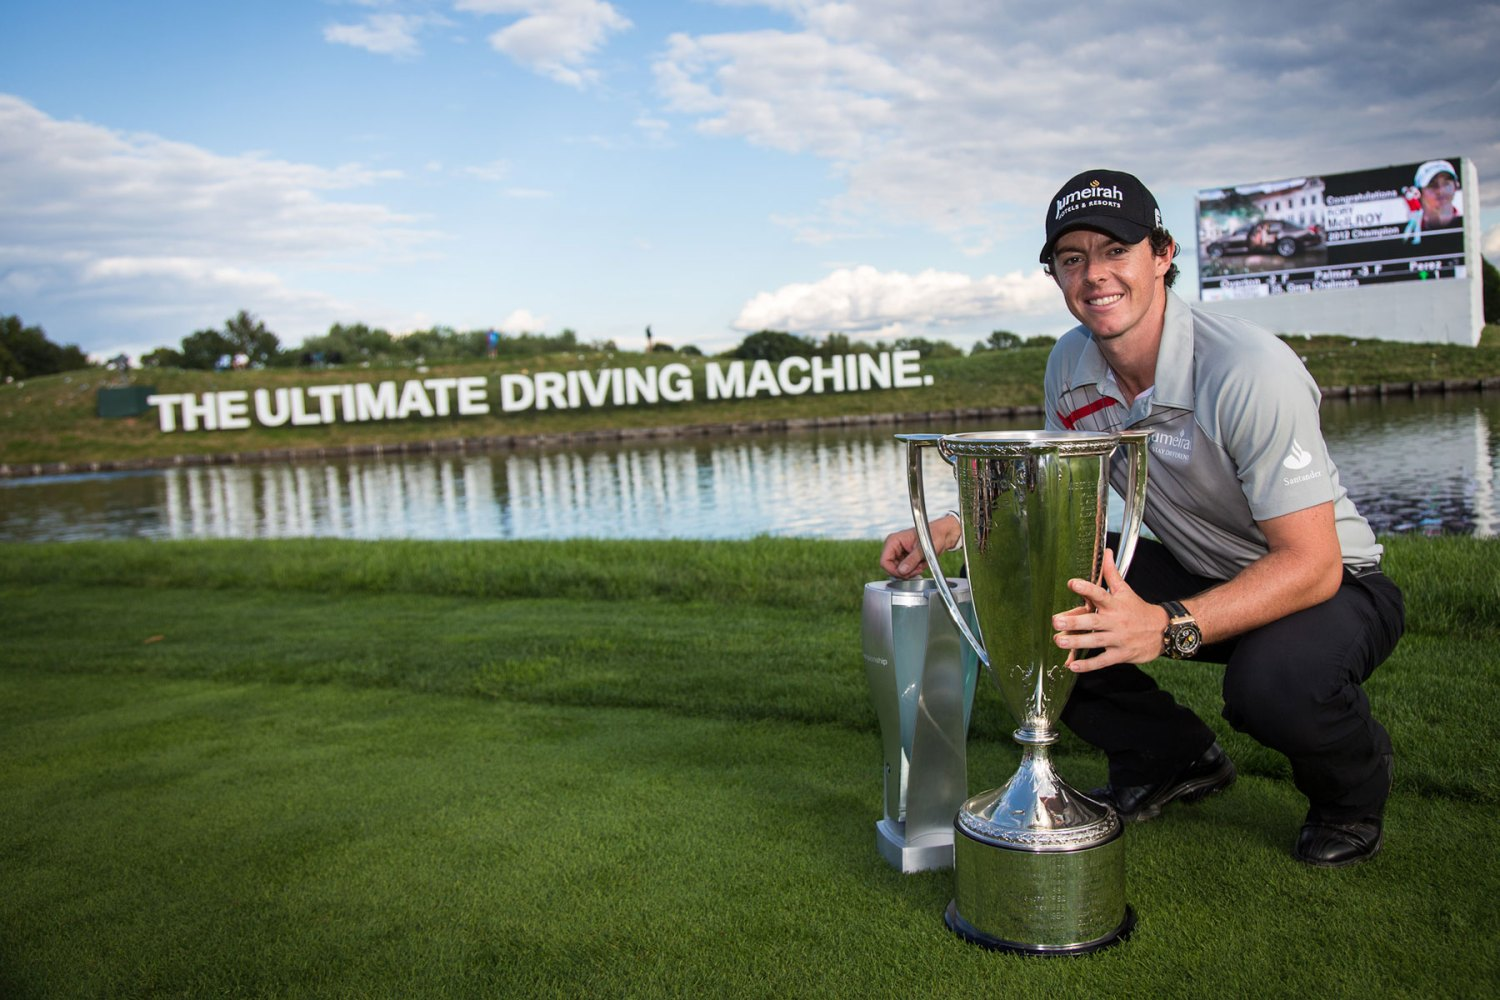 Rory McIlroy and BMW